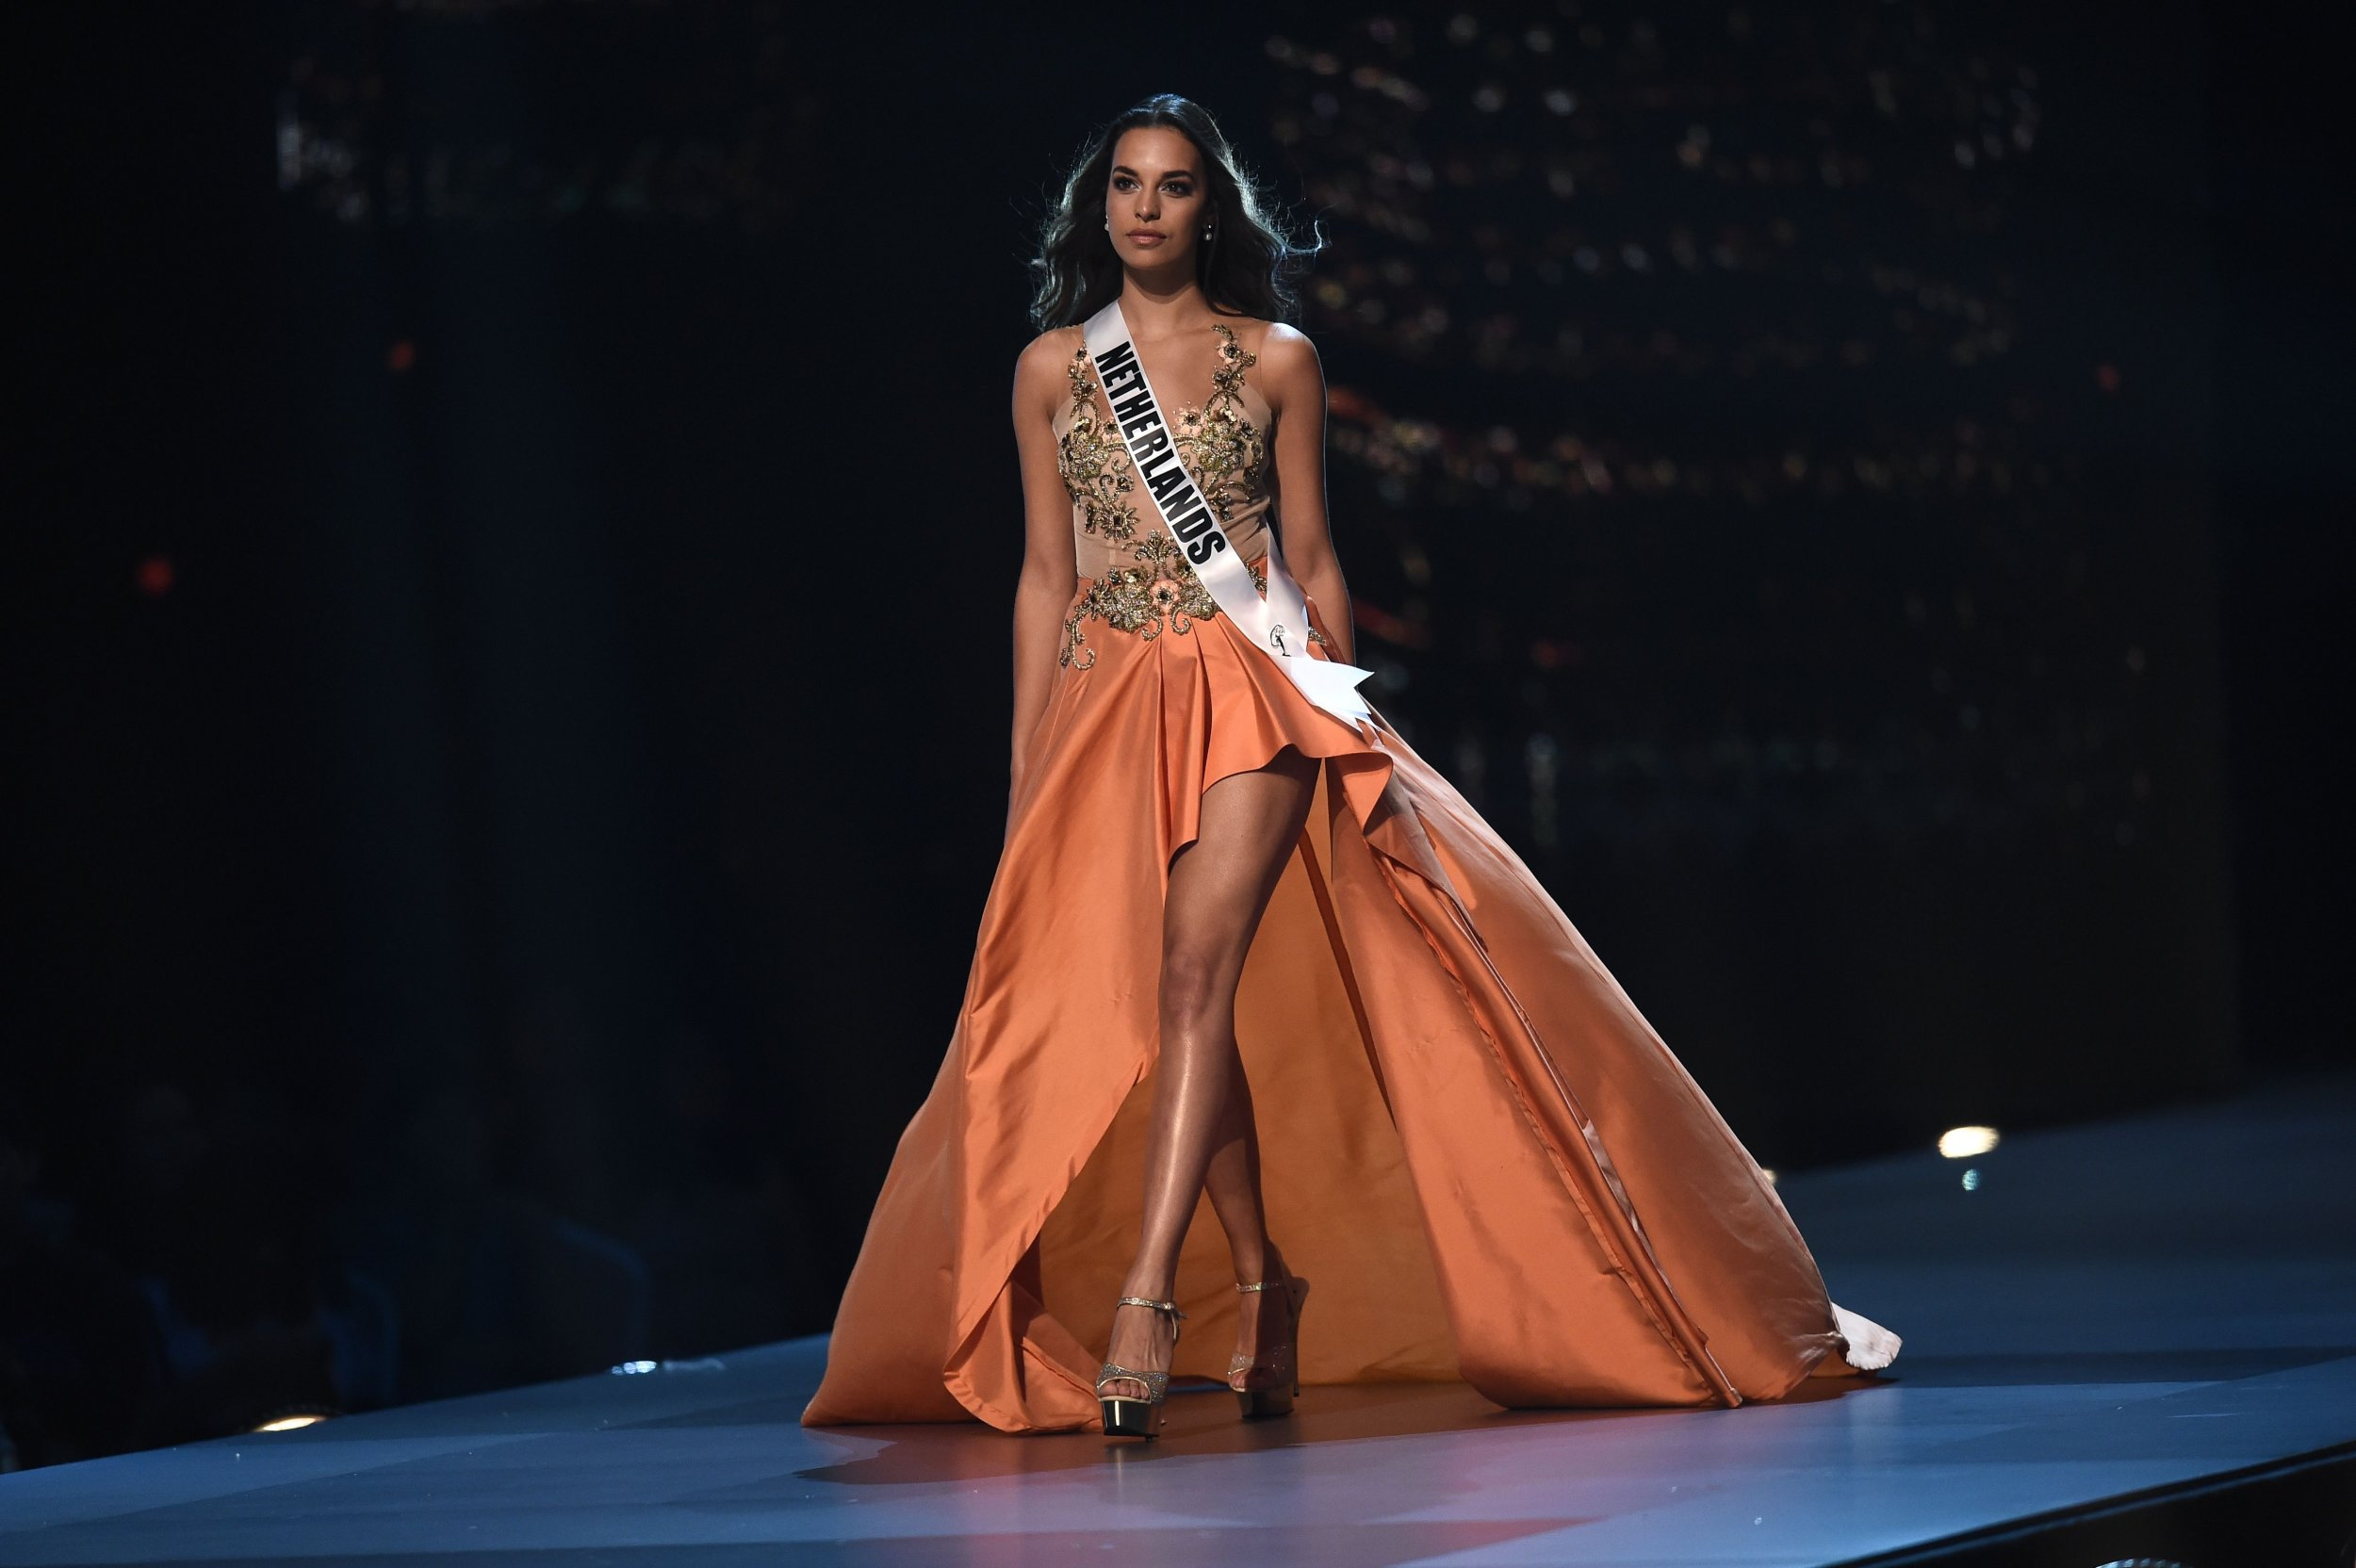 Miss Universe 2018 2019 >> 2018 Miss Universe Live Stream: How to Watch Online, Channel, Start Time and More